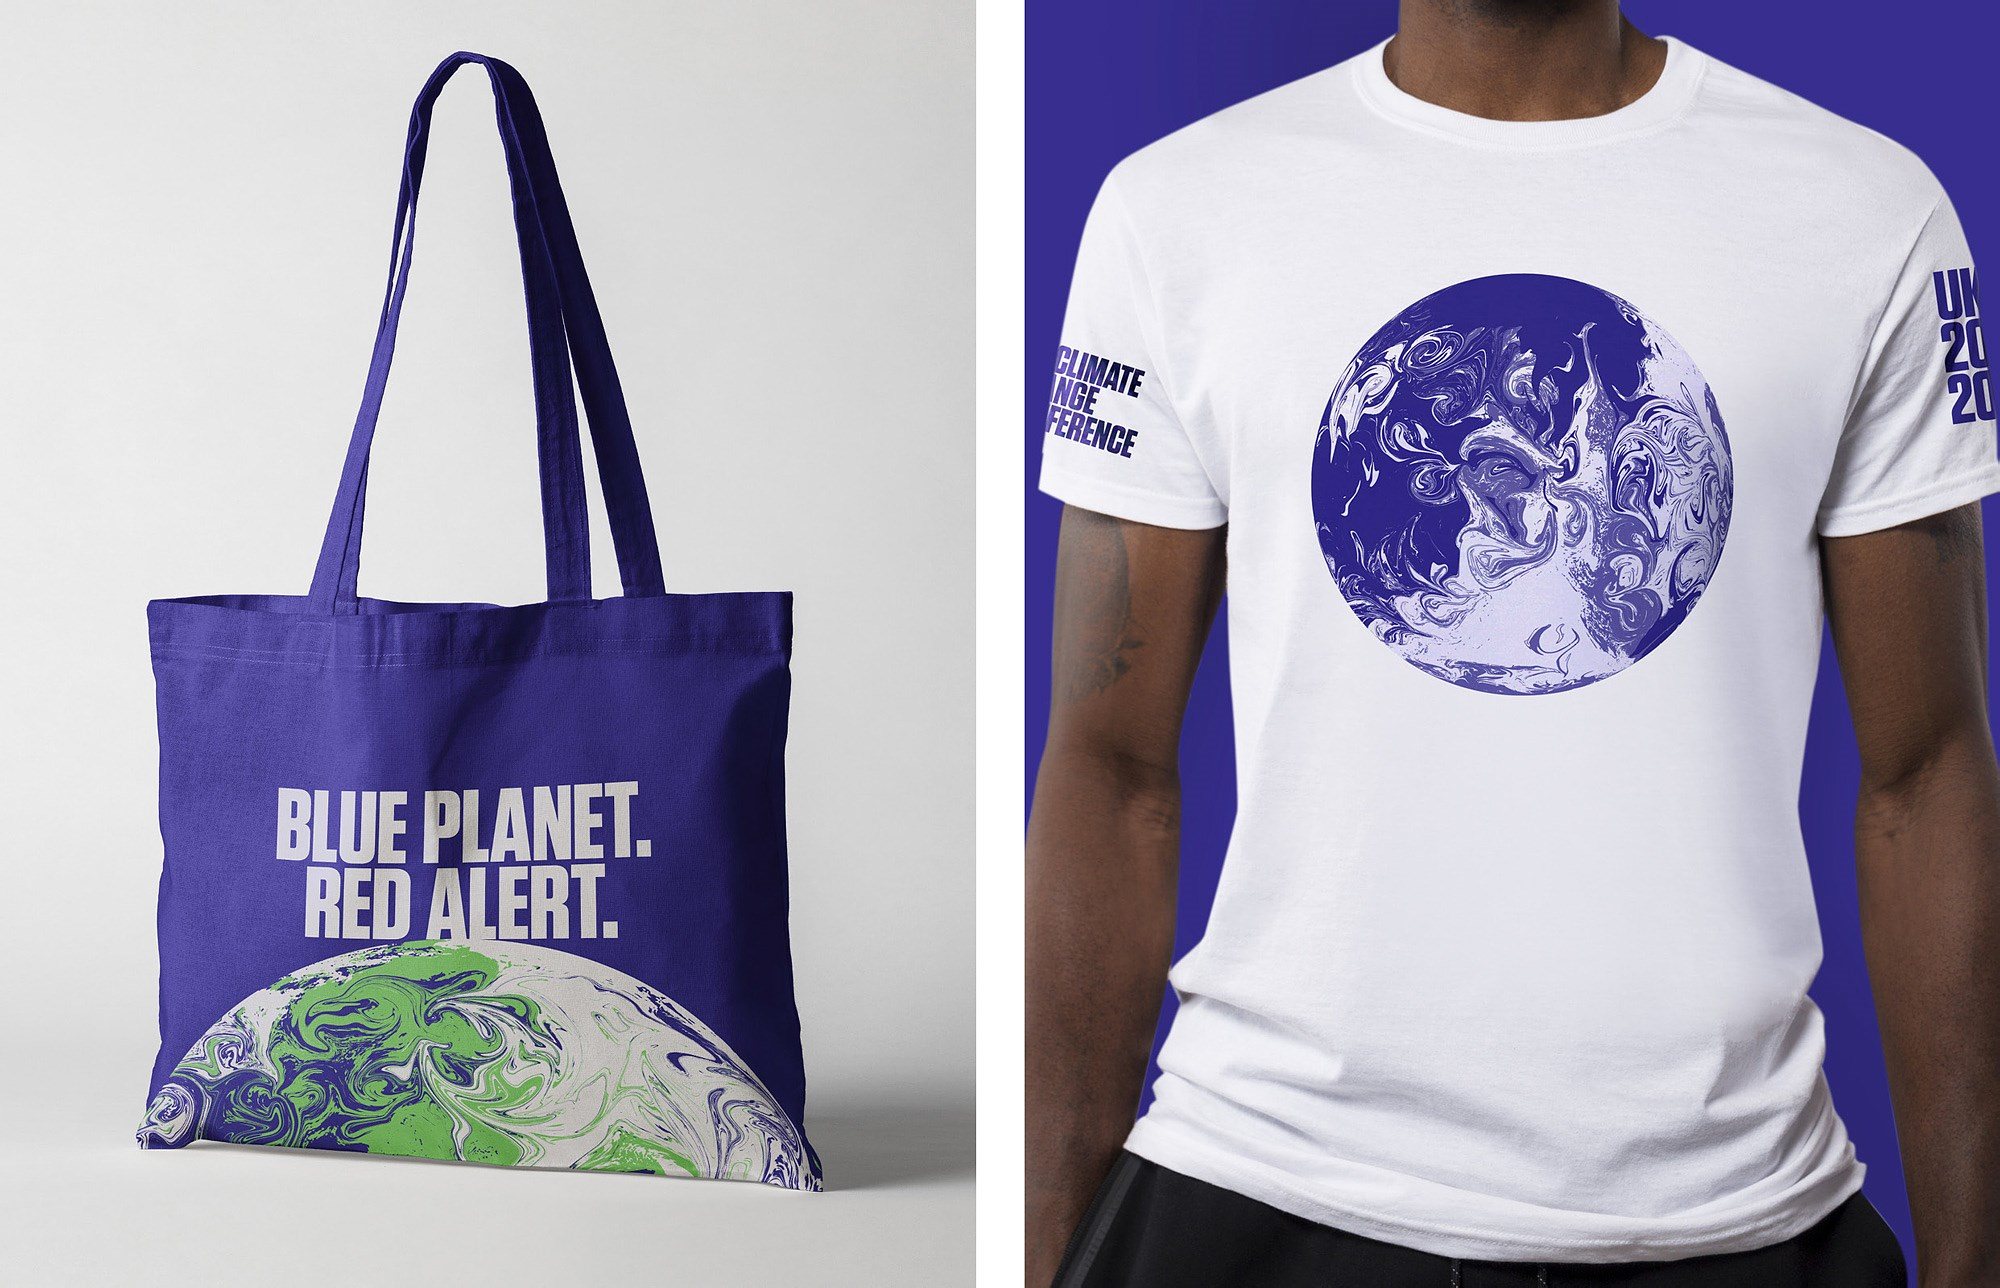 06-un_climate_change_conference_tote_tshirt.jpg